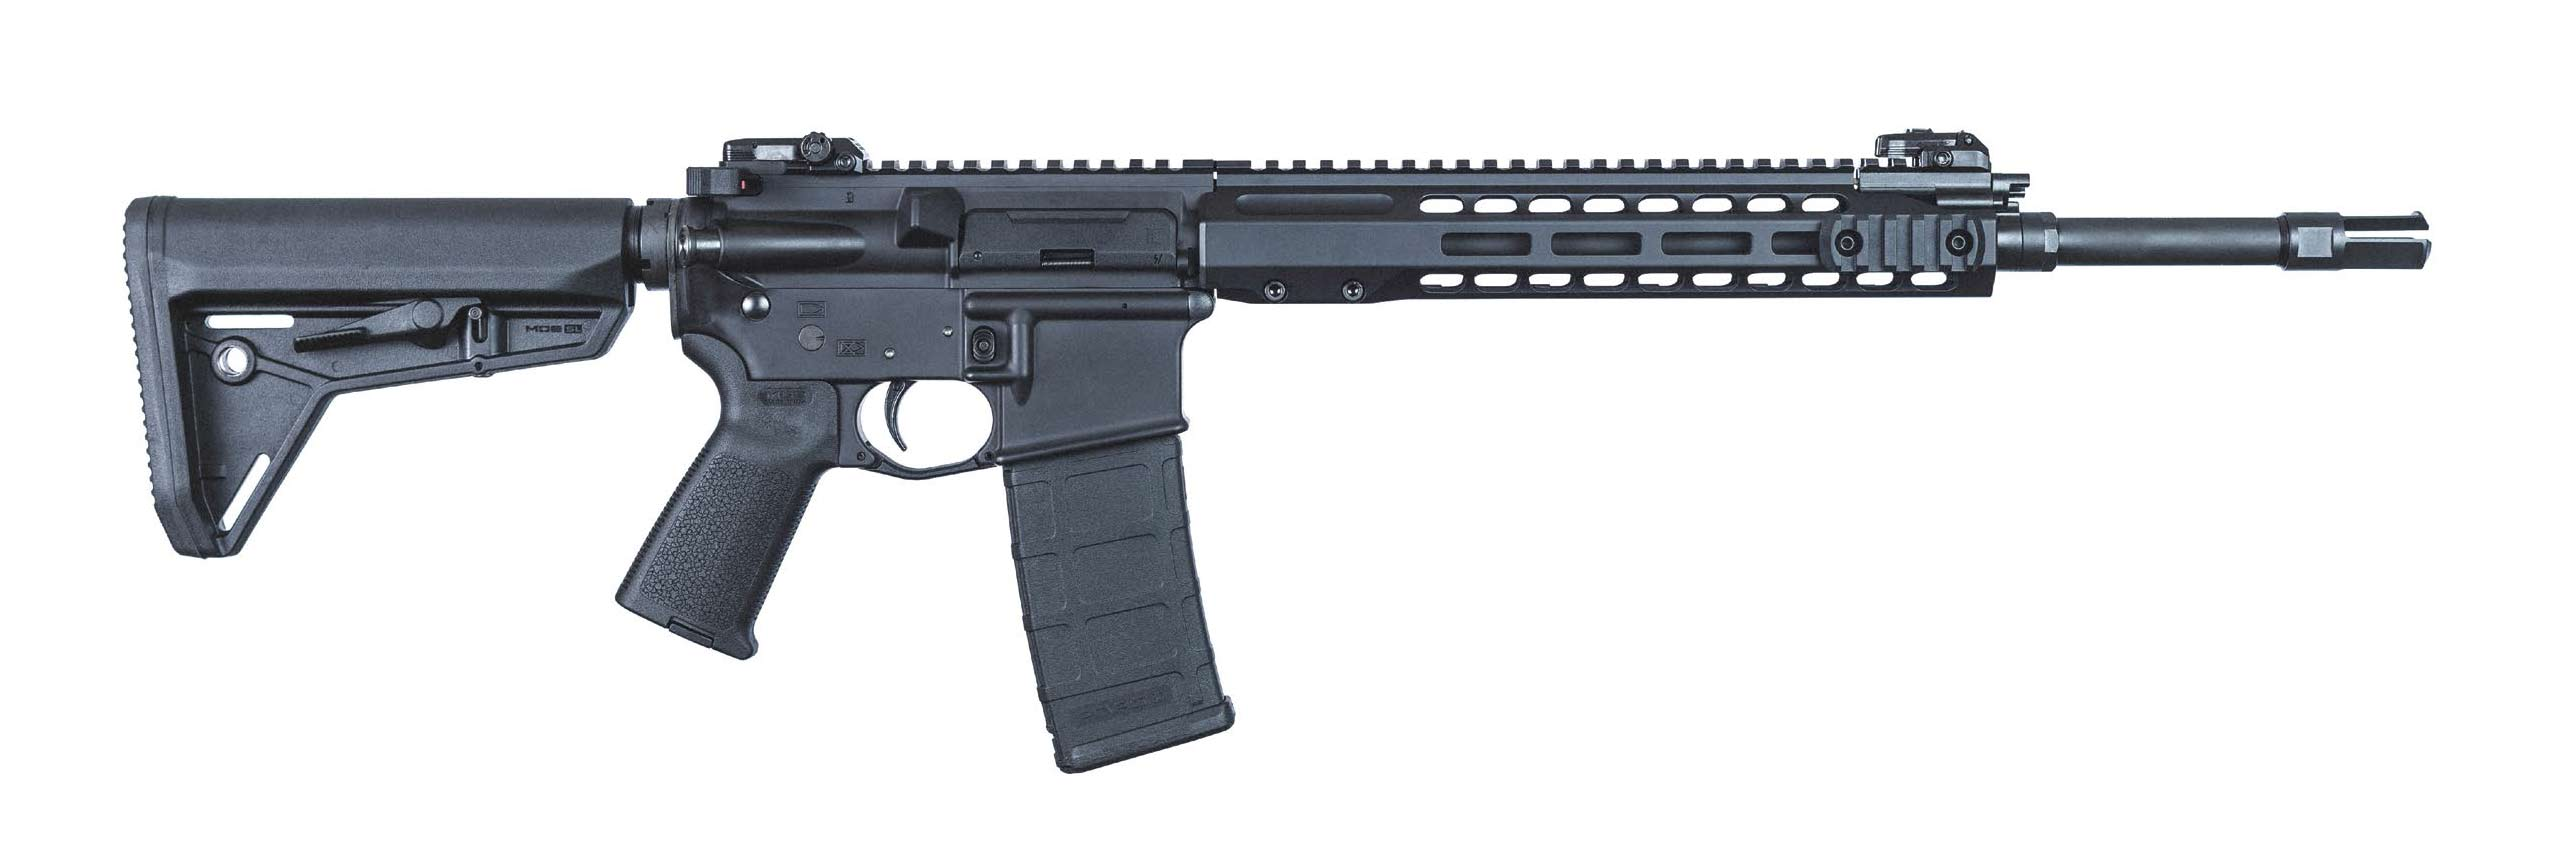 "REC7 Gen2 Rifle System, 5.56, 16"", M-LOK, Black 16980